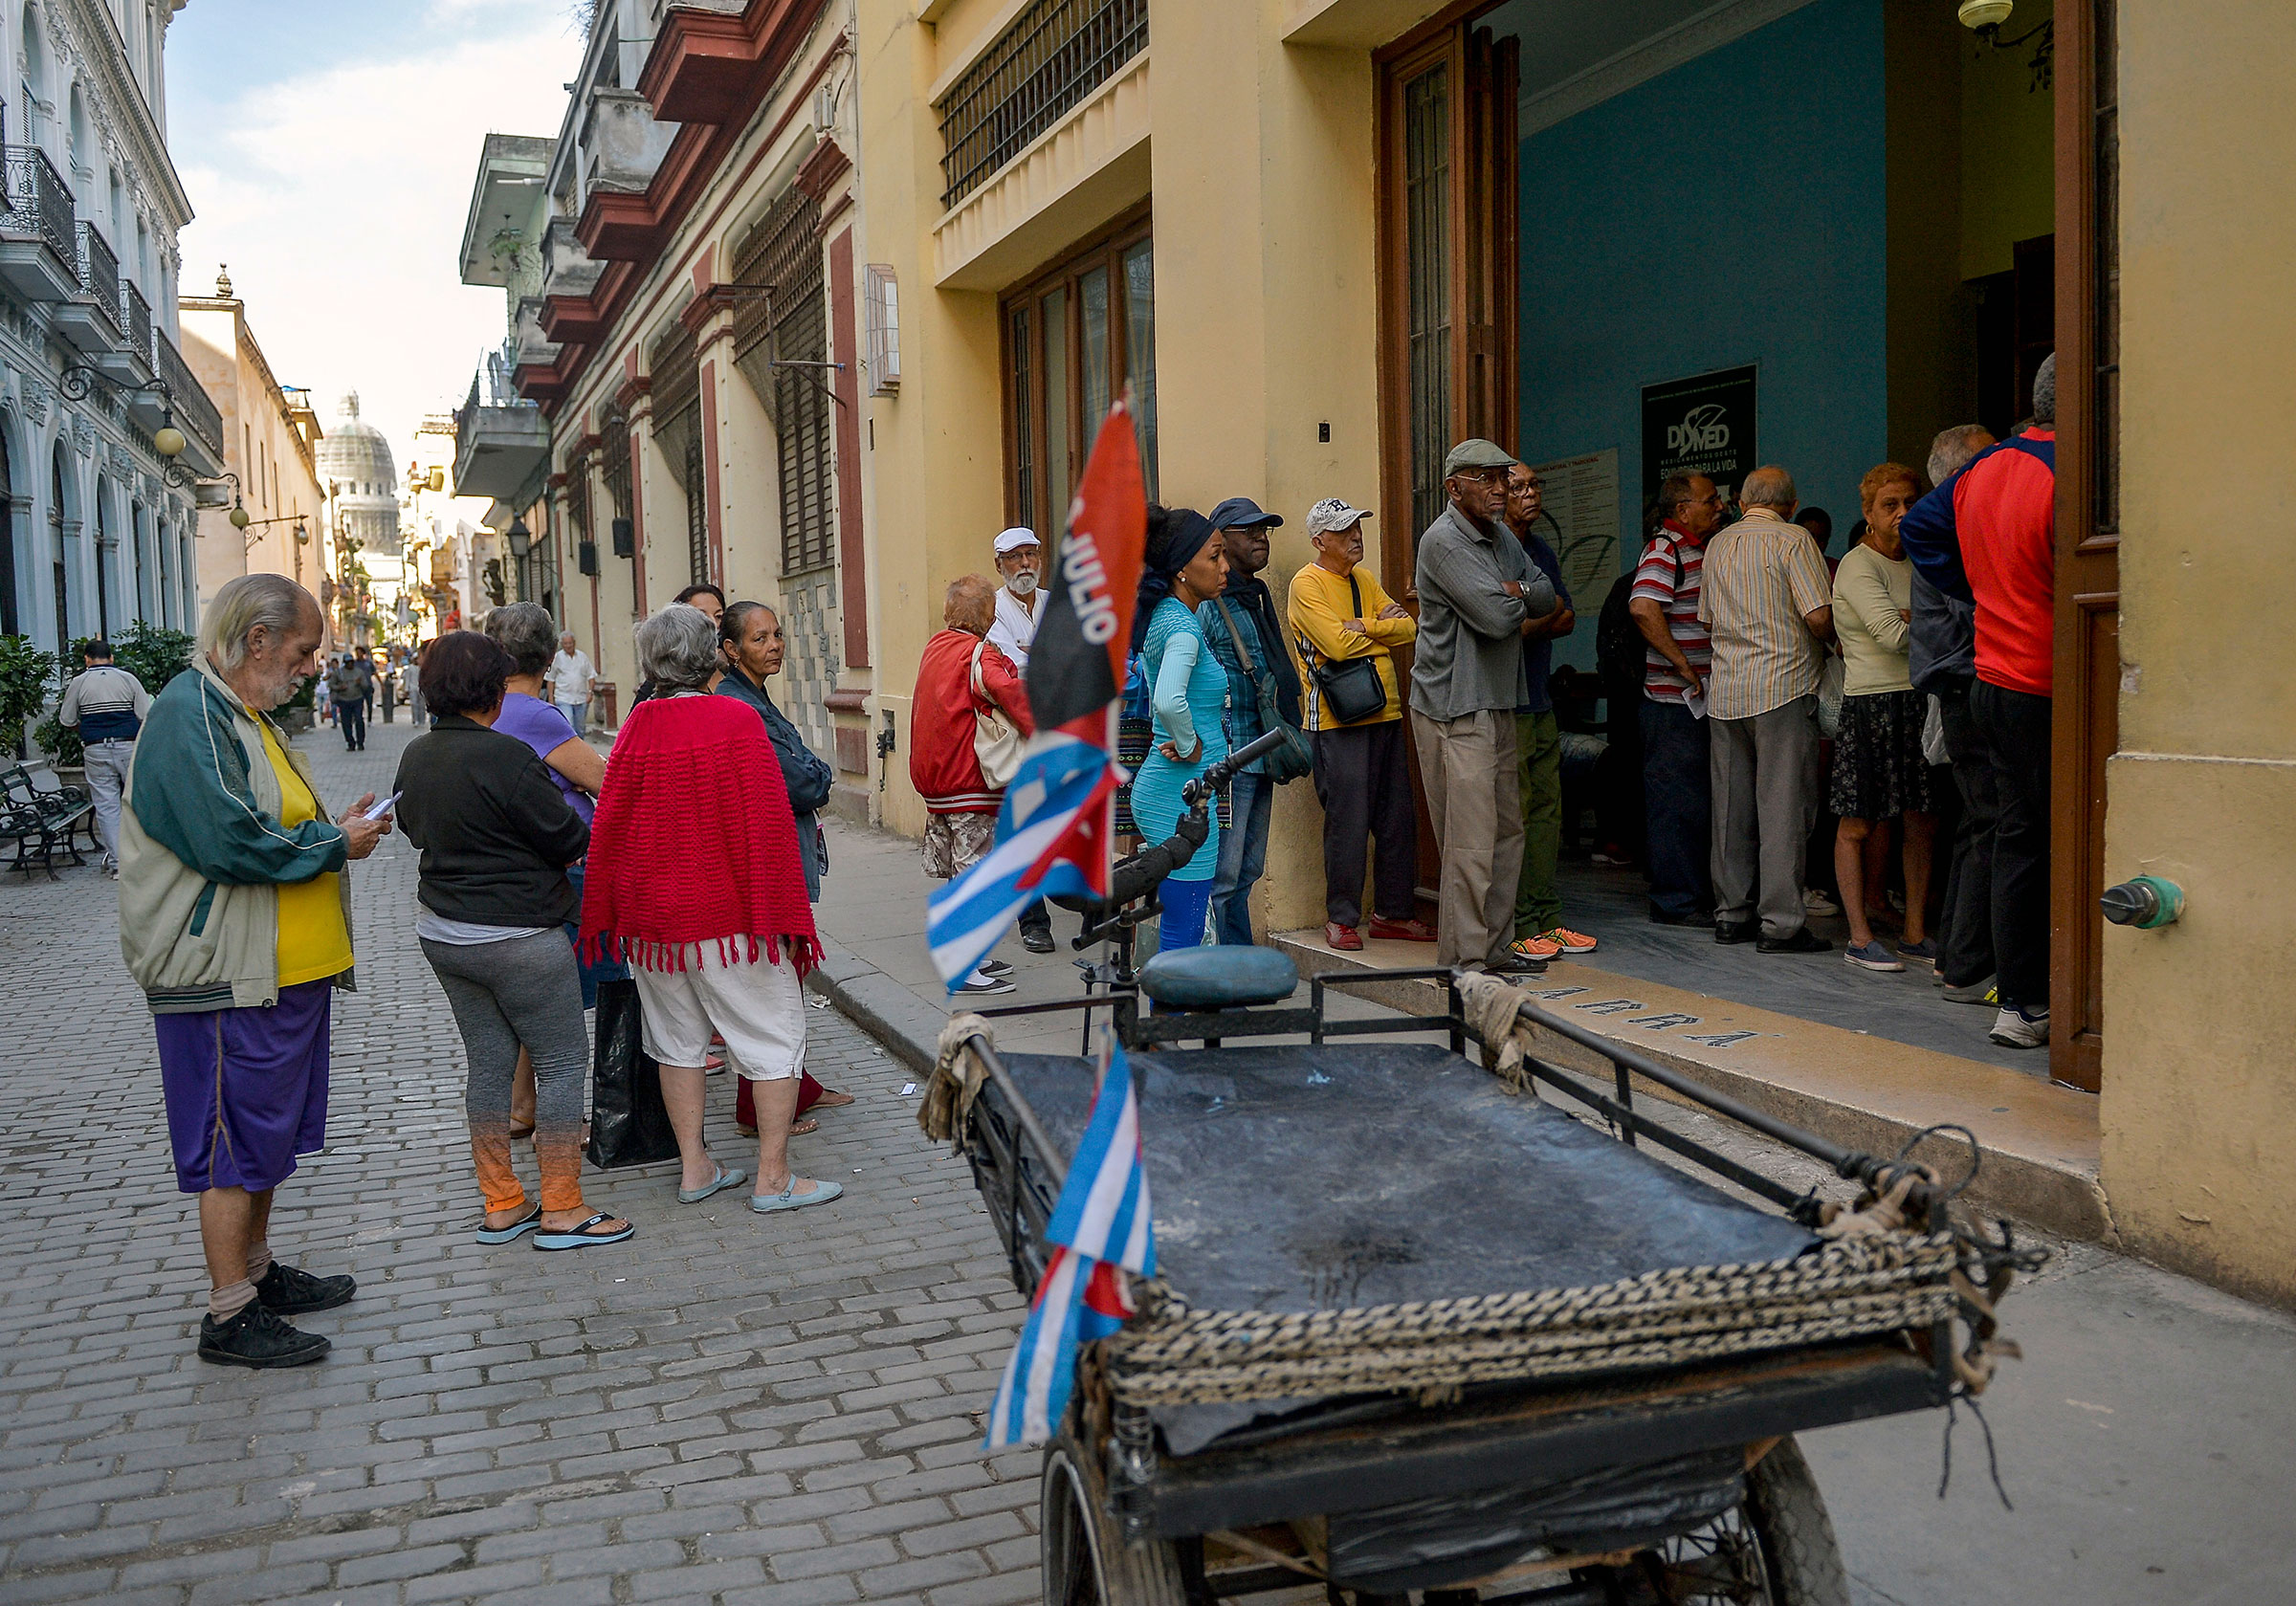 Cubans line up to buy food in Havana, on April 4, 2019.